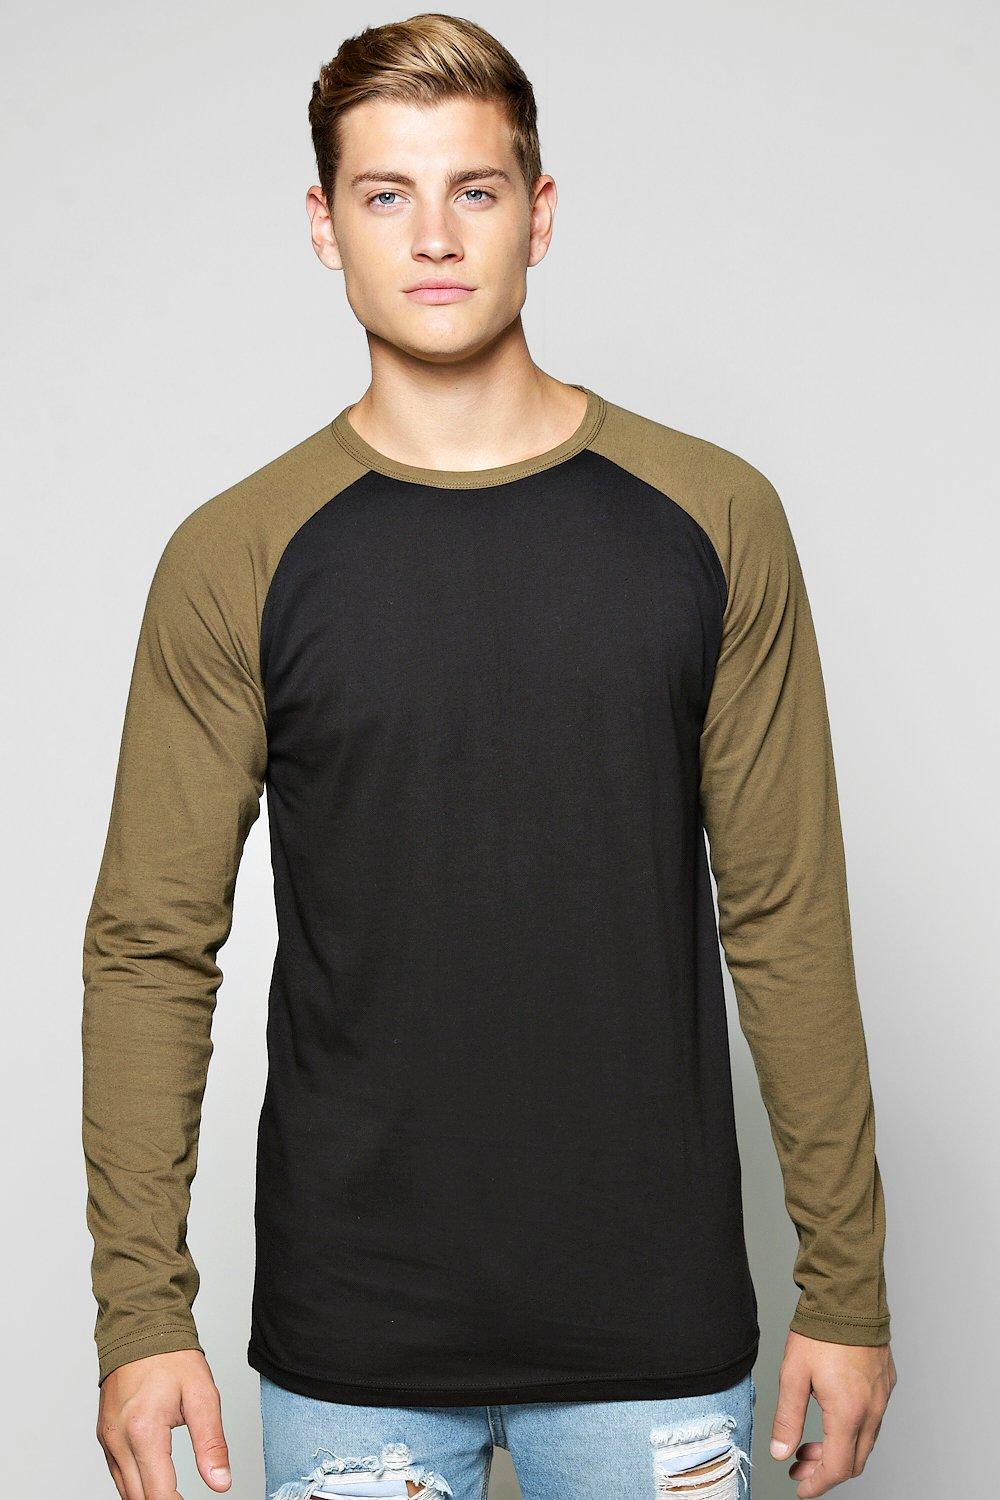 Free shipping BOTH ways on raglan t shirts men, from our vast selection of styles. Fast delivery, and 24/7/ real-person service with a smile. Click or call